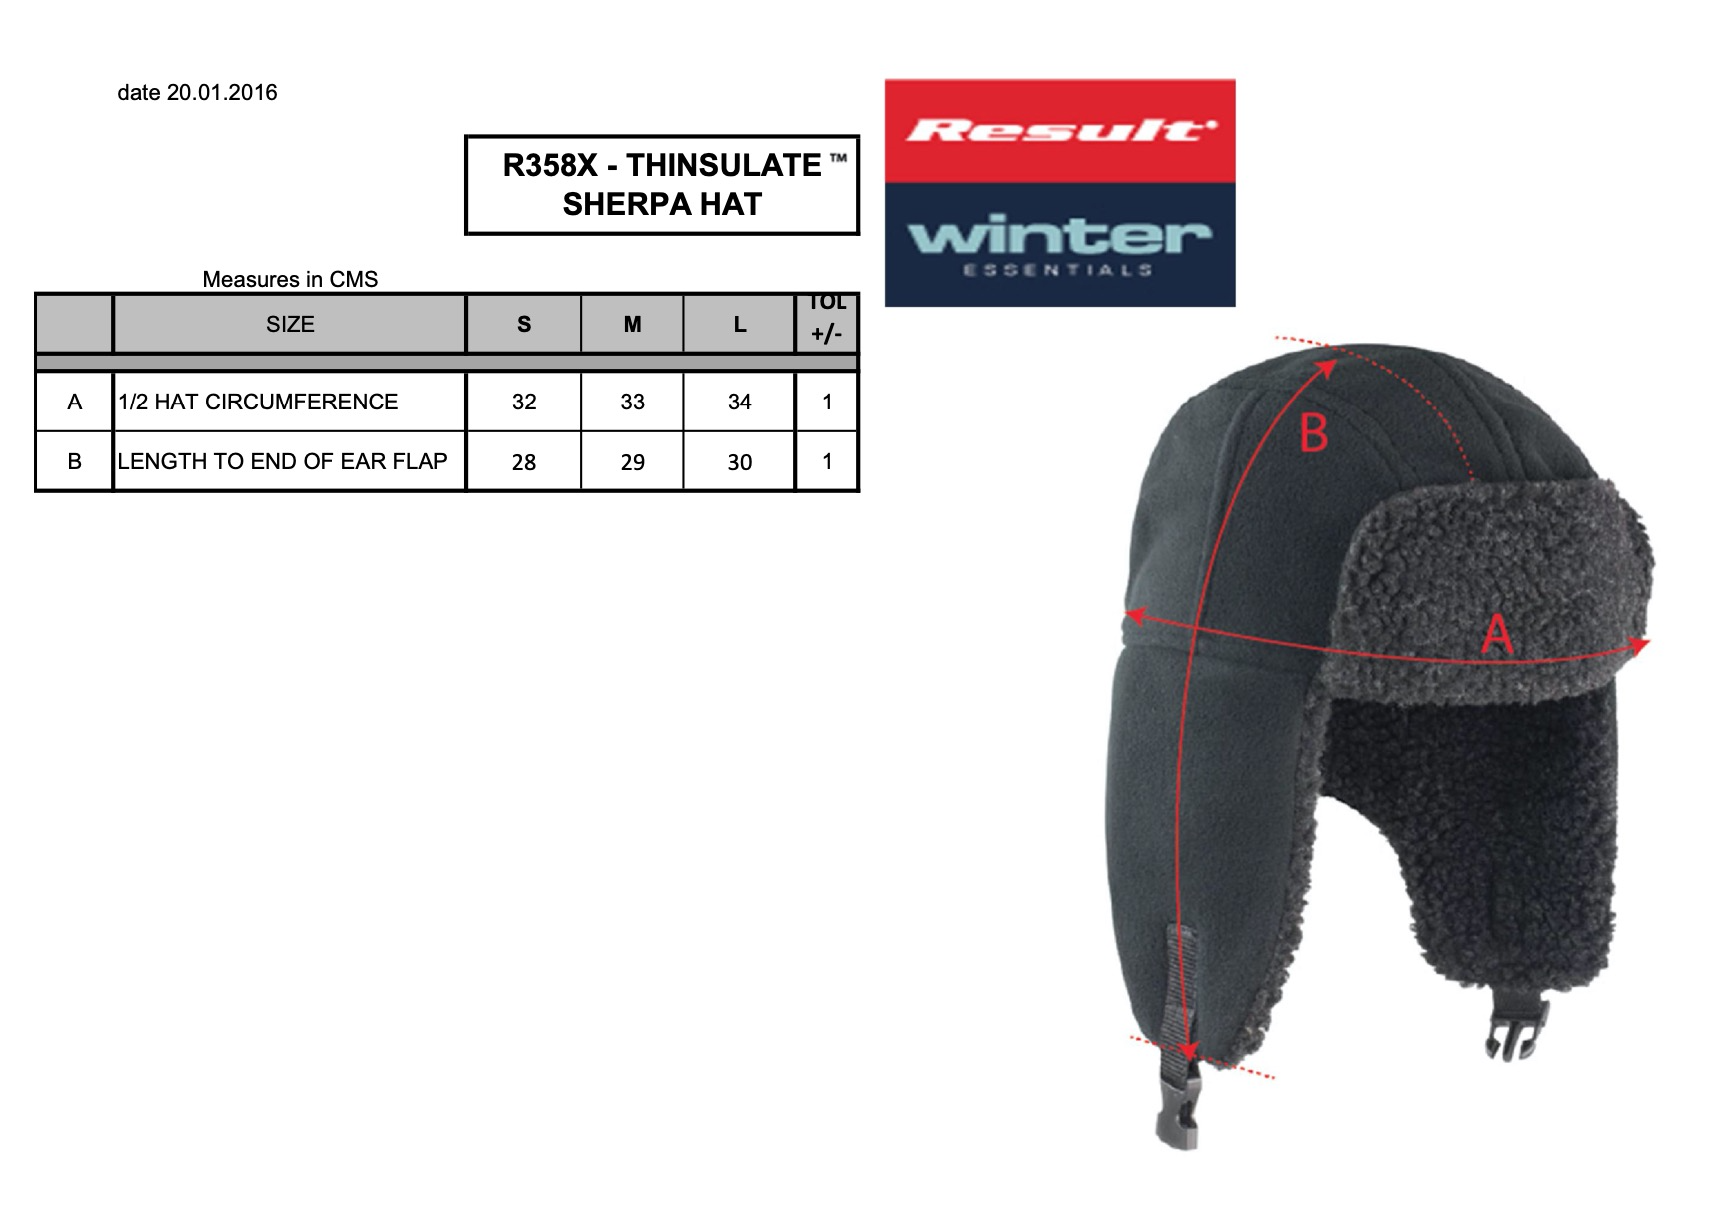 Result: Thinsulate Sherpa Hat R358X